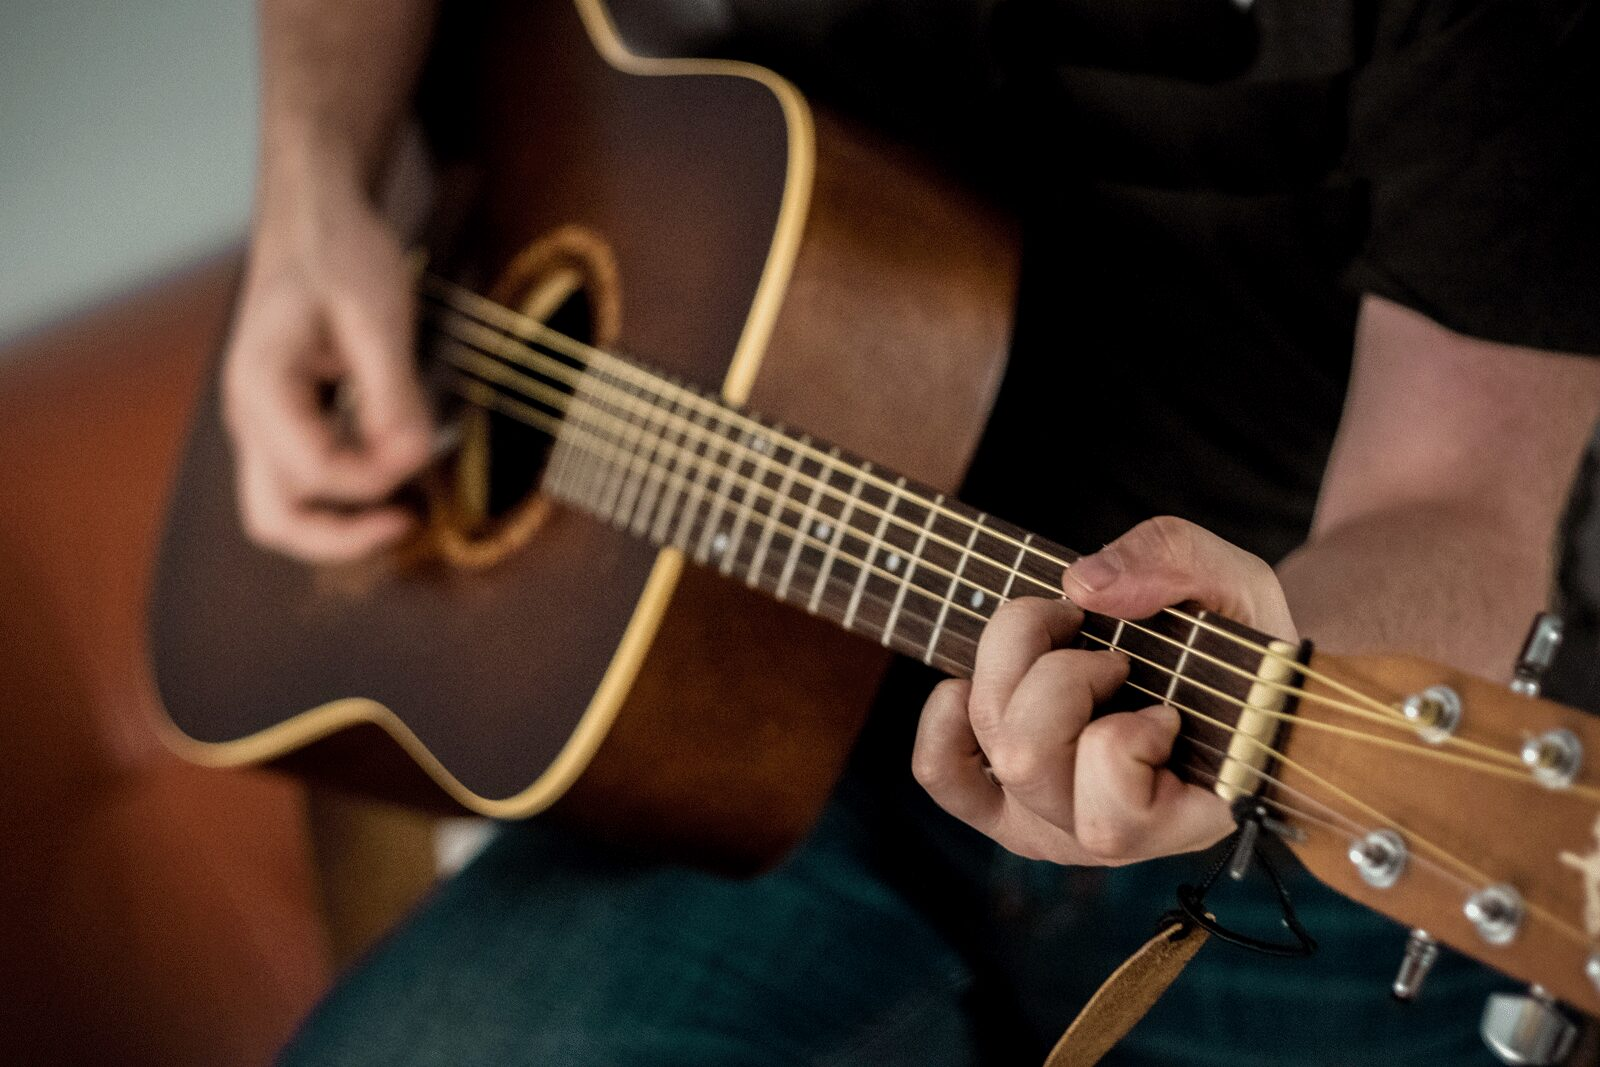 Which Is The Easiest Guitar To Learn For Beginners?